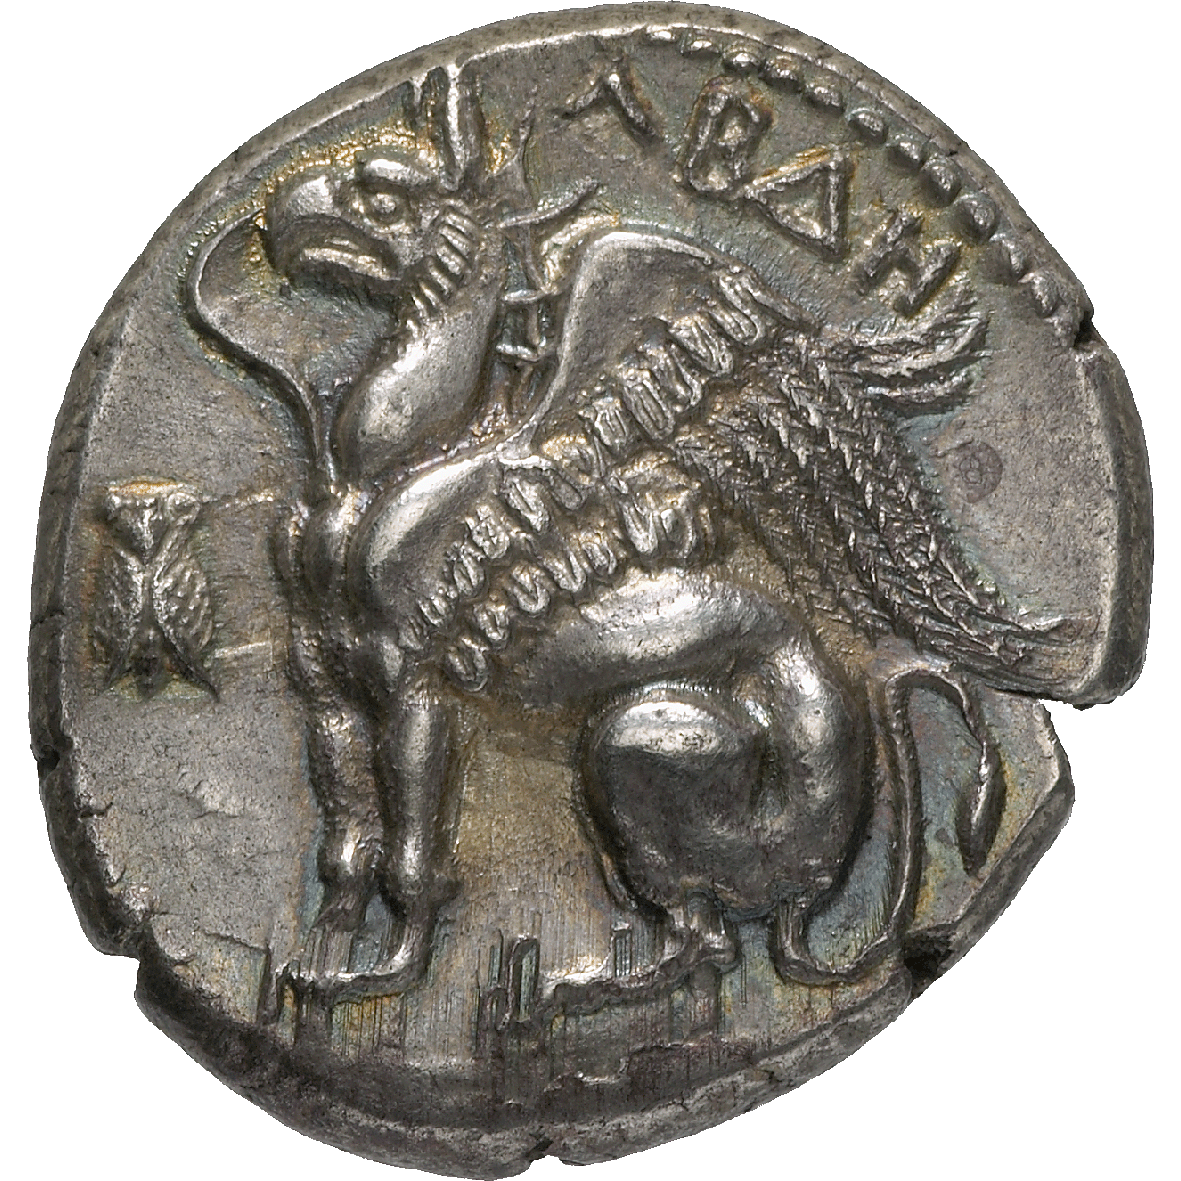 Thrace, City of Abdera, Stater (obverse)